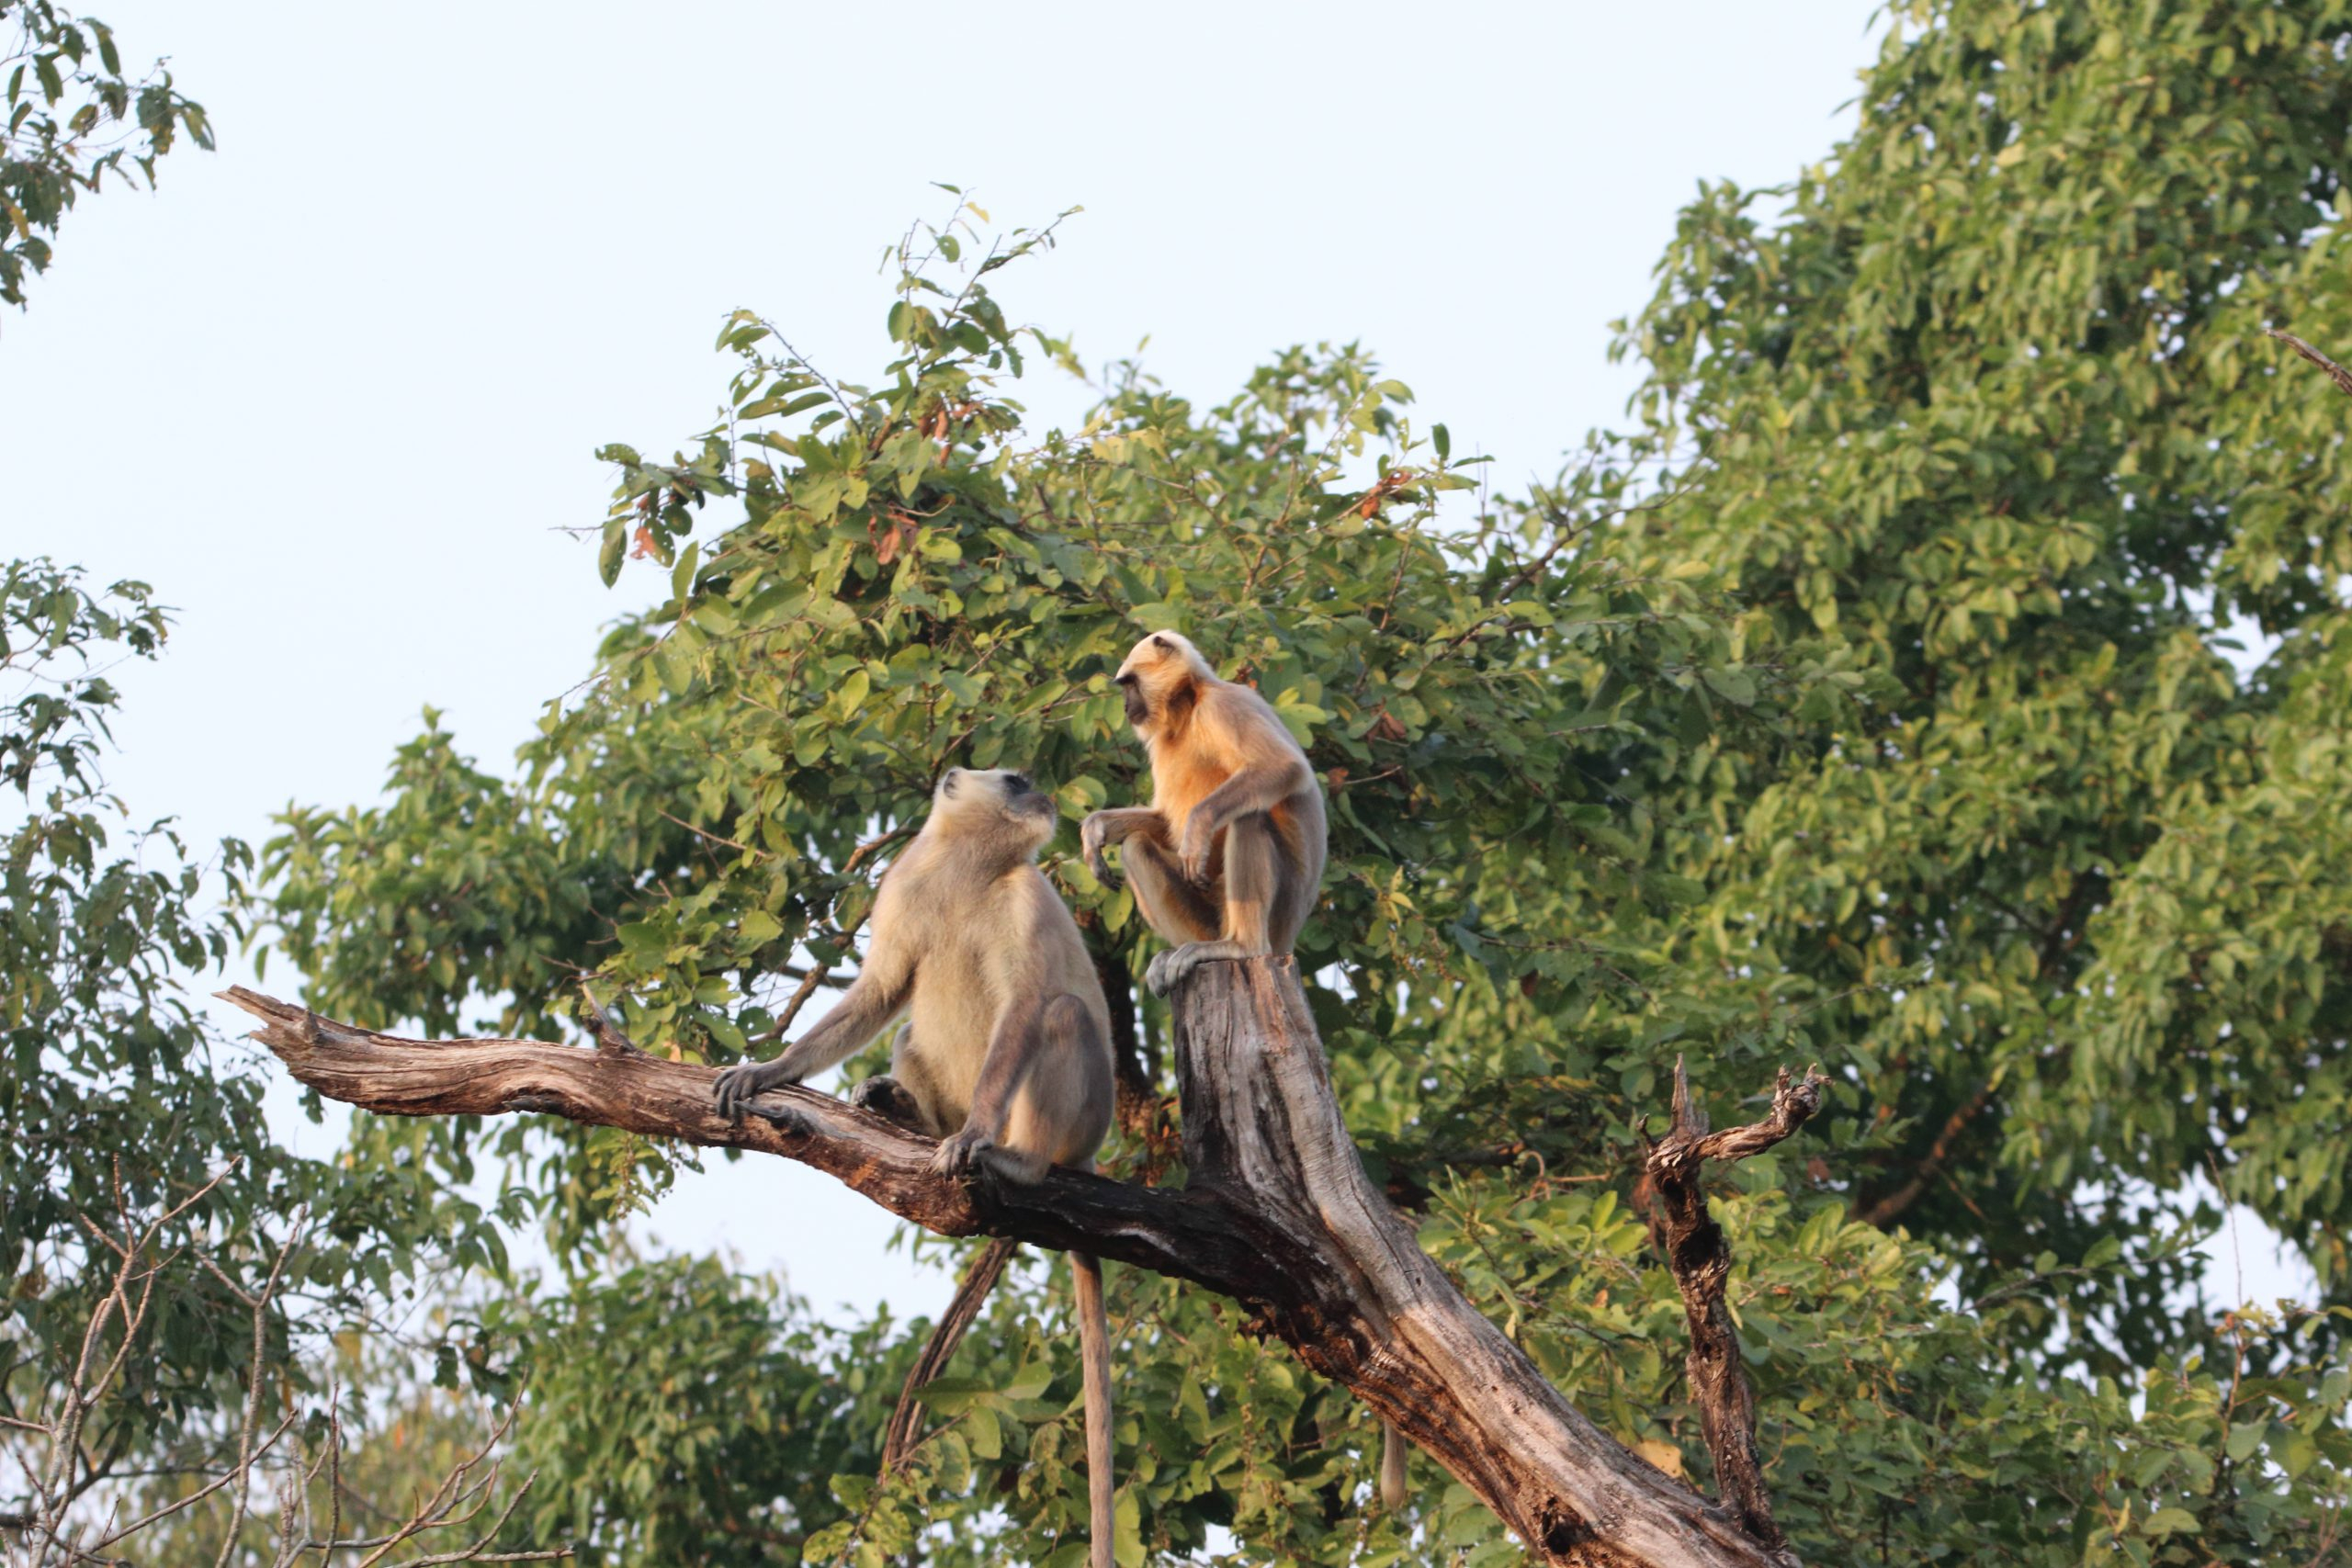 Langurs in the forest